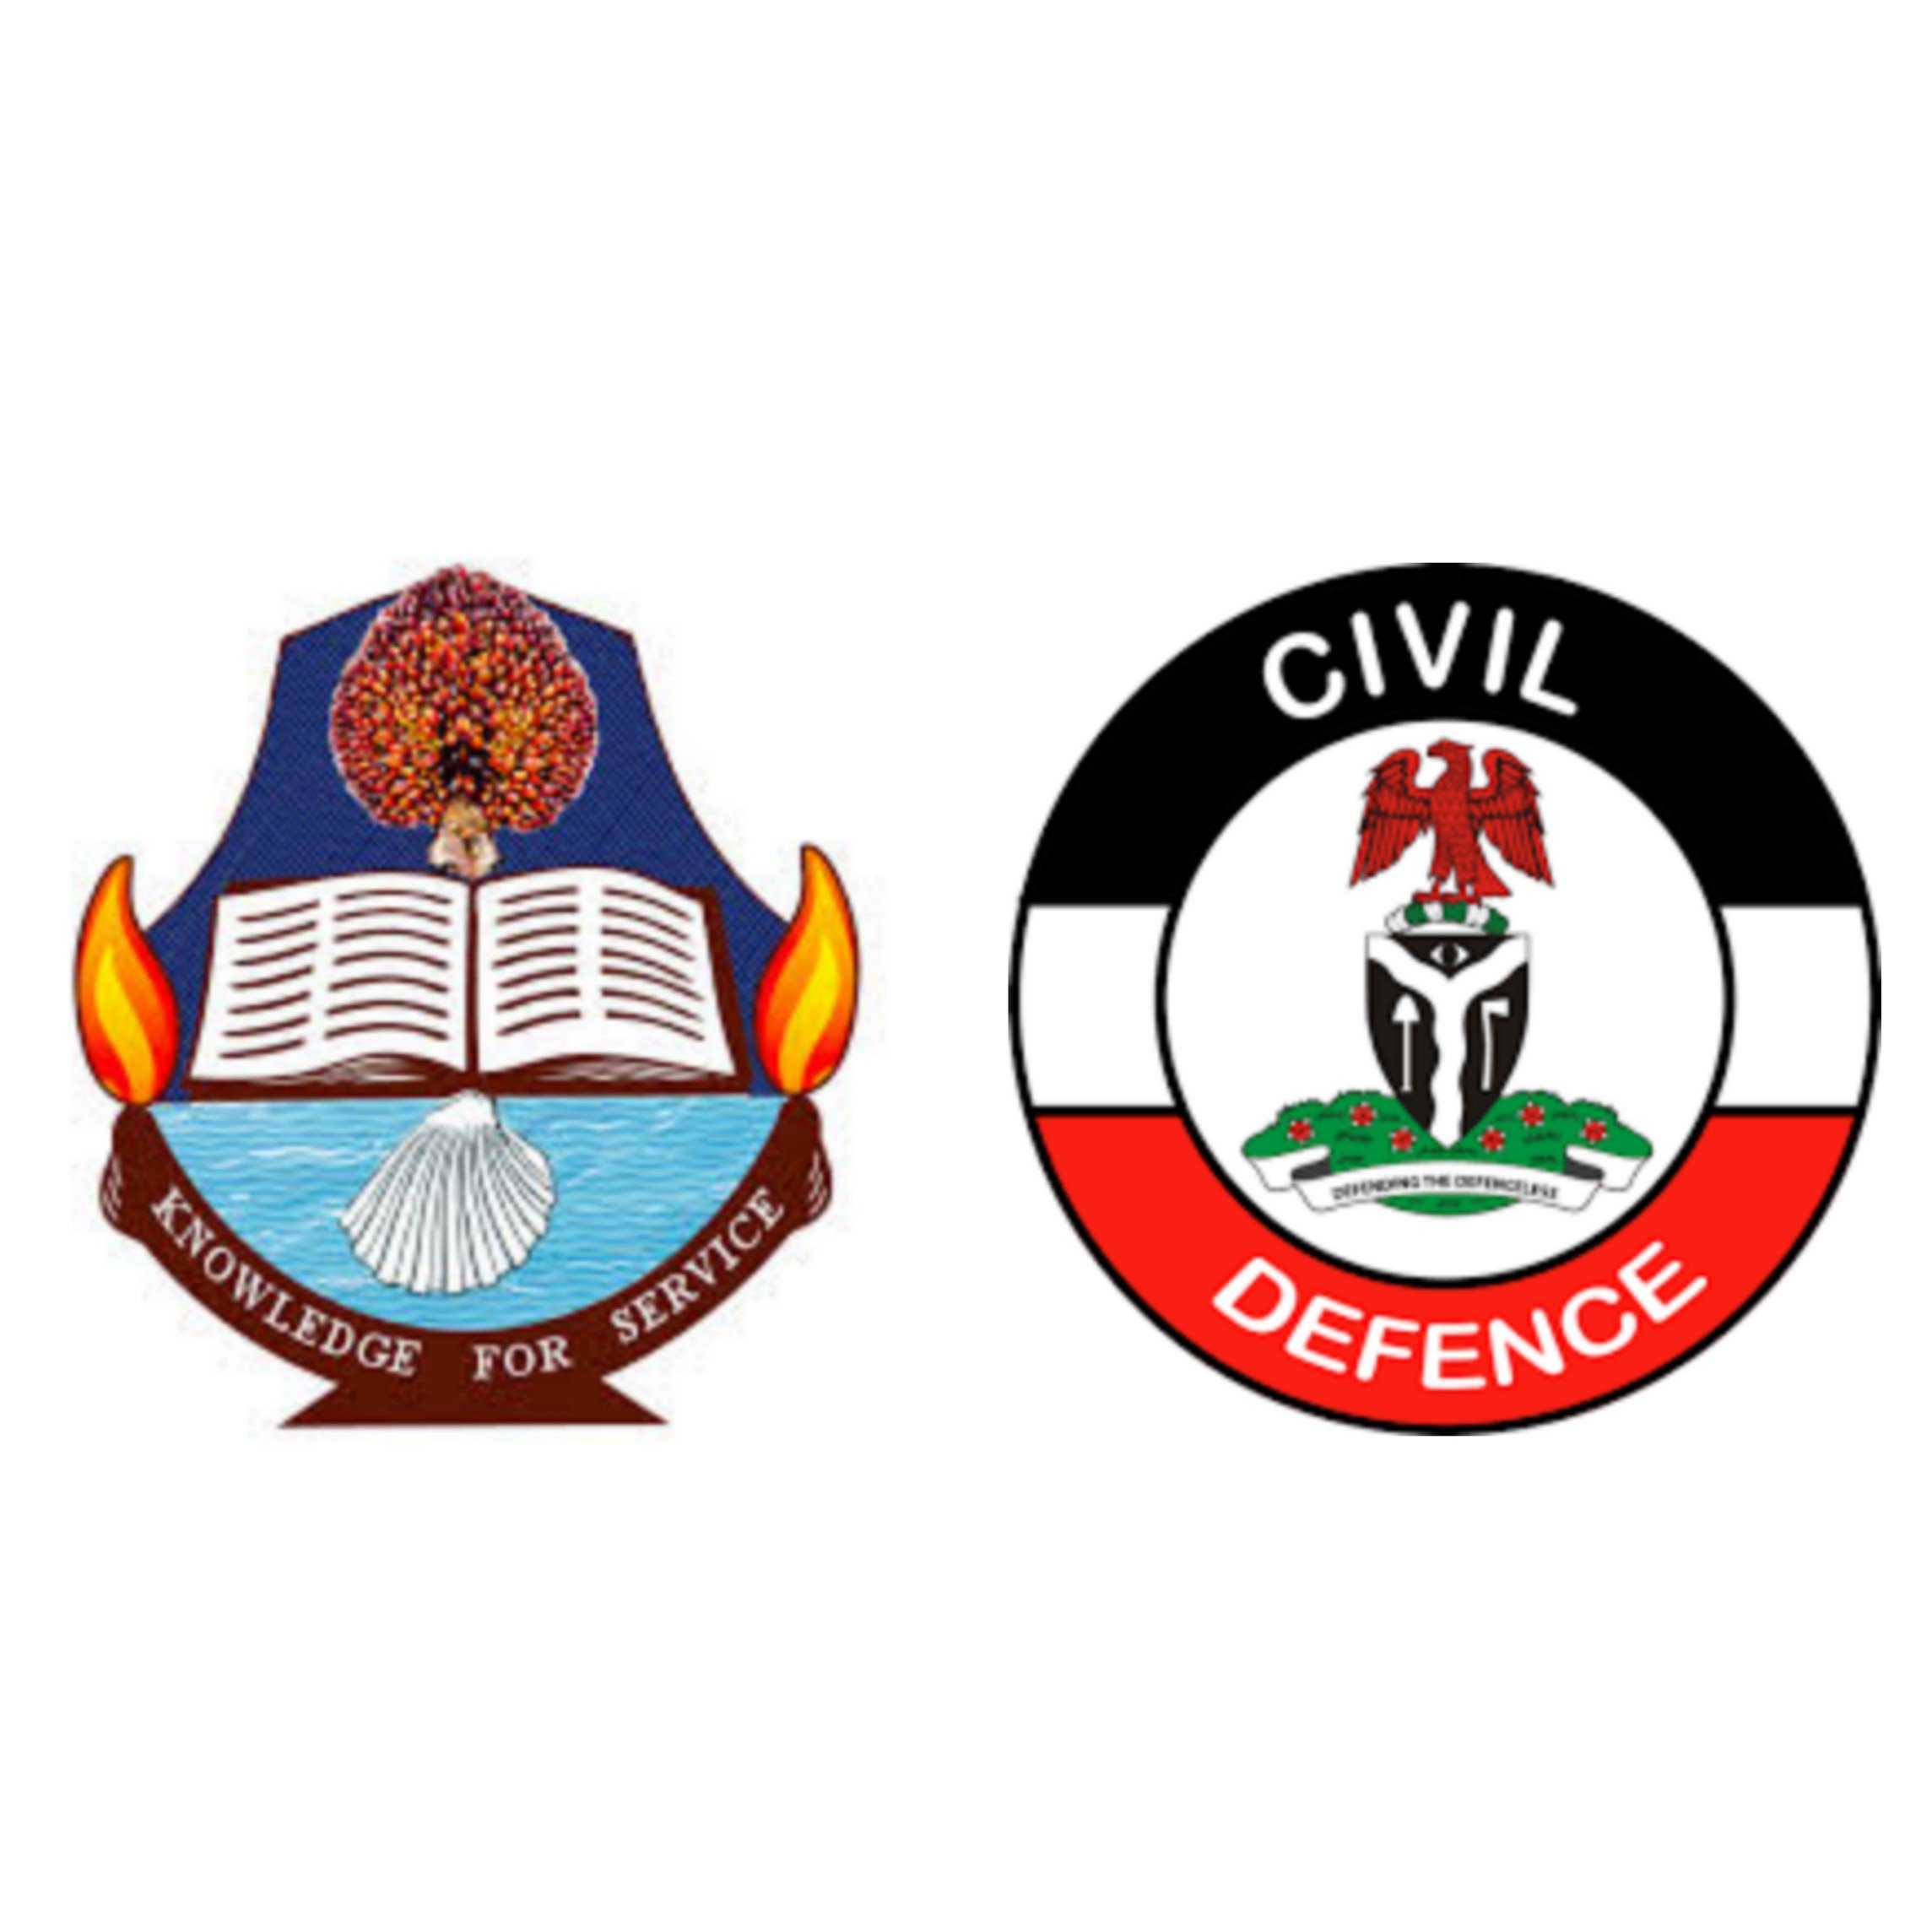 FHC, ABUJA GRANTS UNICAL PERPETUAL INJUNCTION AGAINST NSCDC IN SECURITY GUARDS DISPUTE